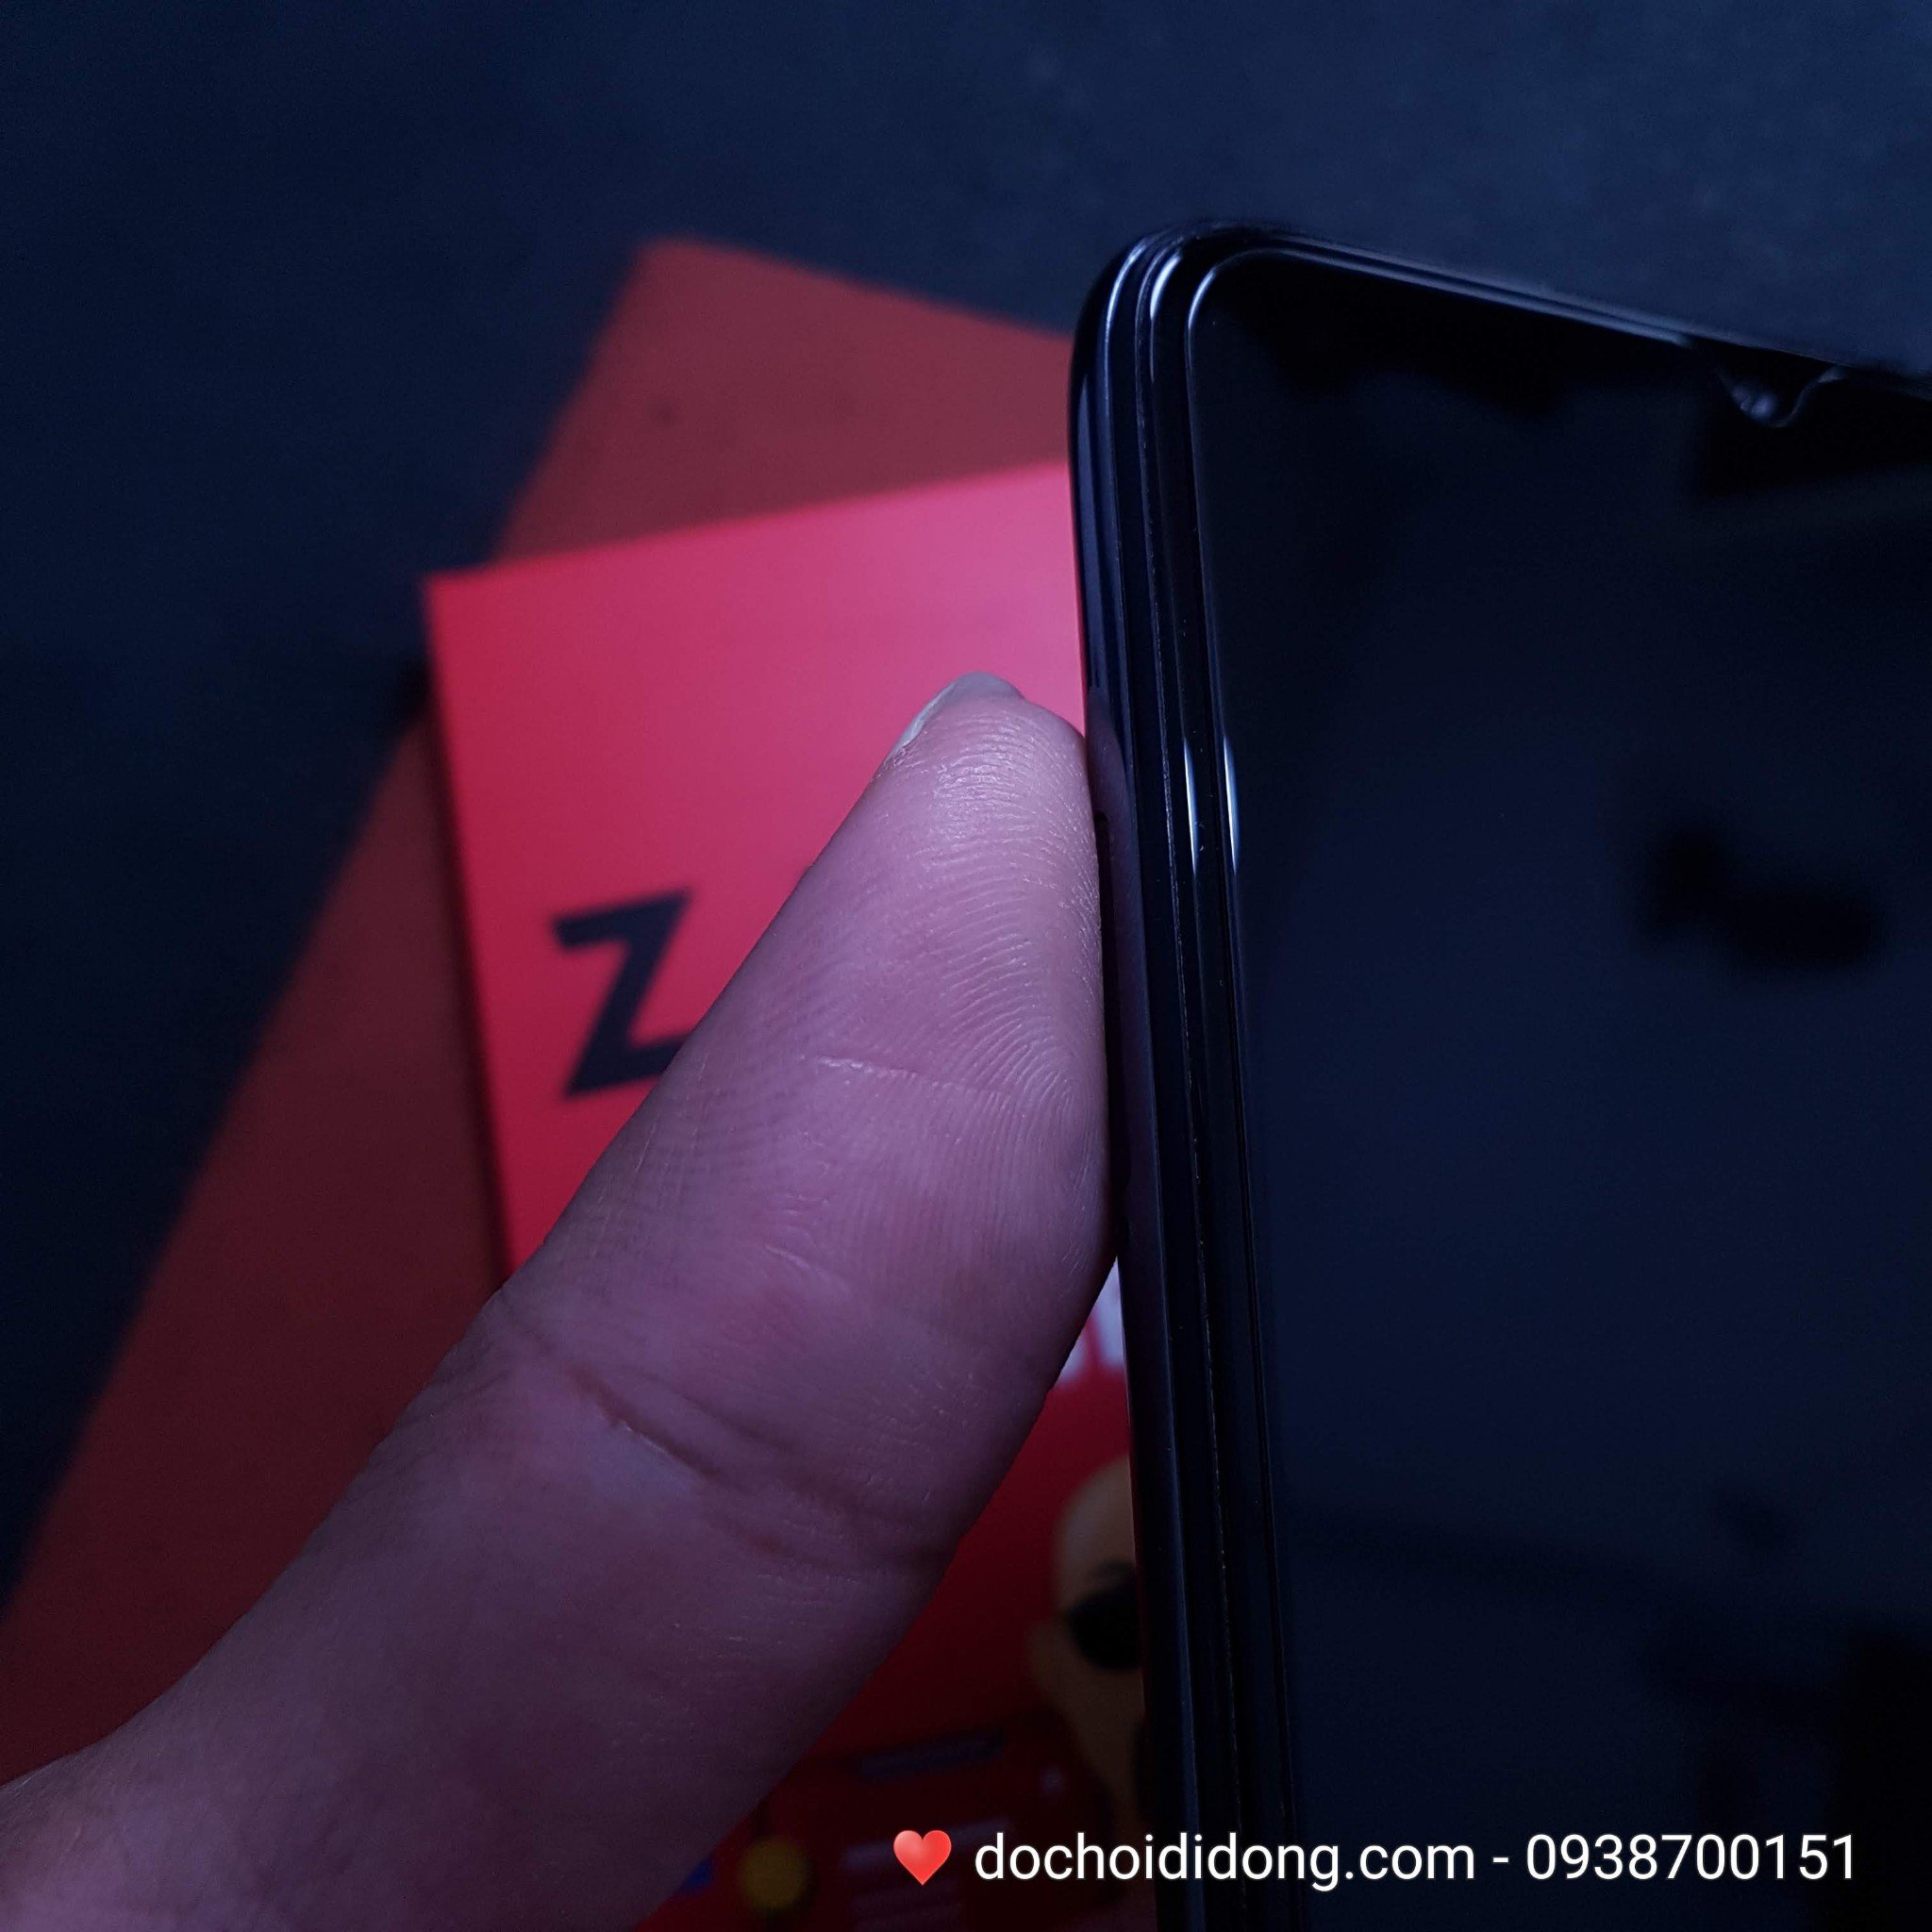 dan-cuong-luc-xiaomi-redmi-note-8-pro-zacase-all-clear